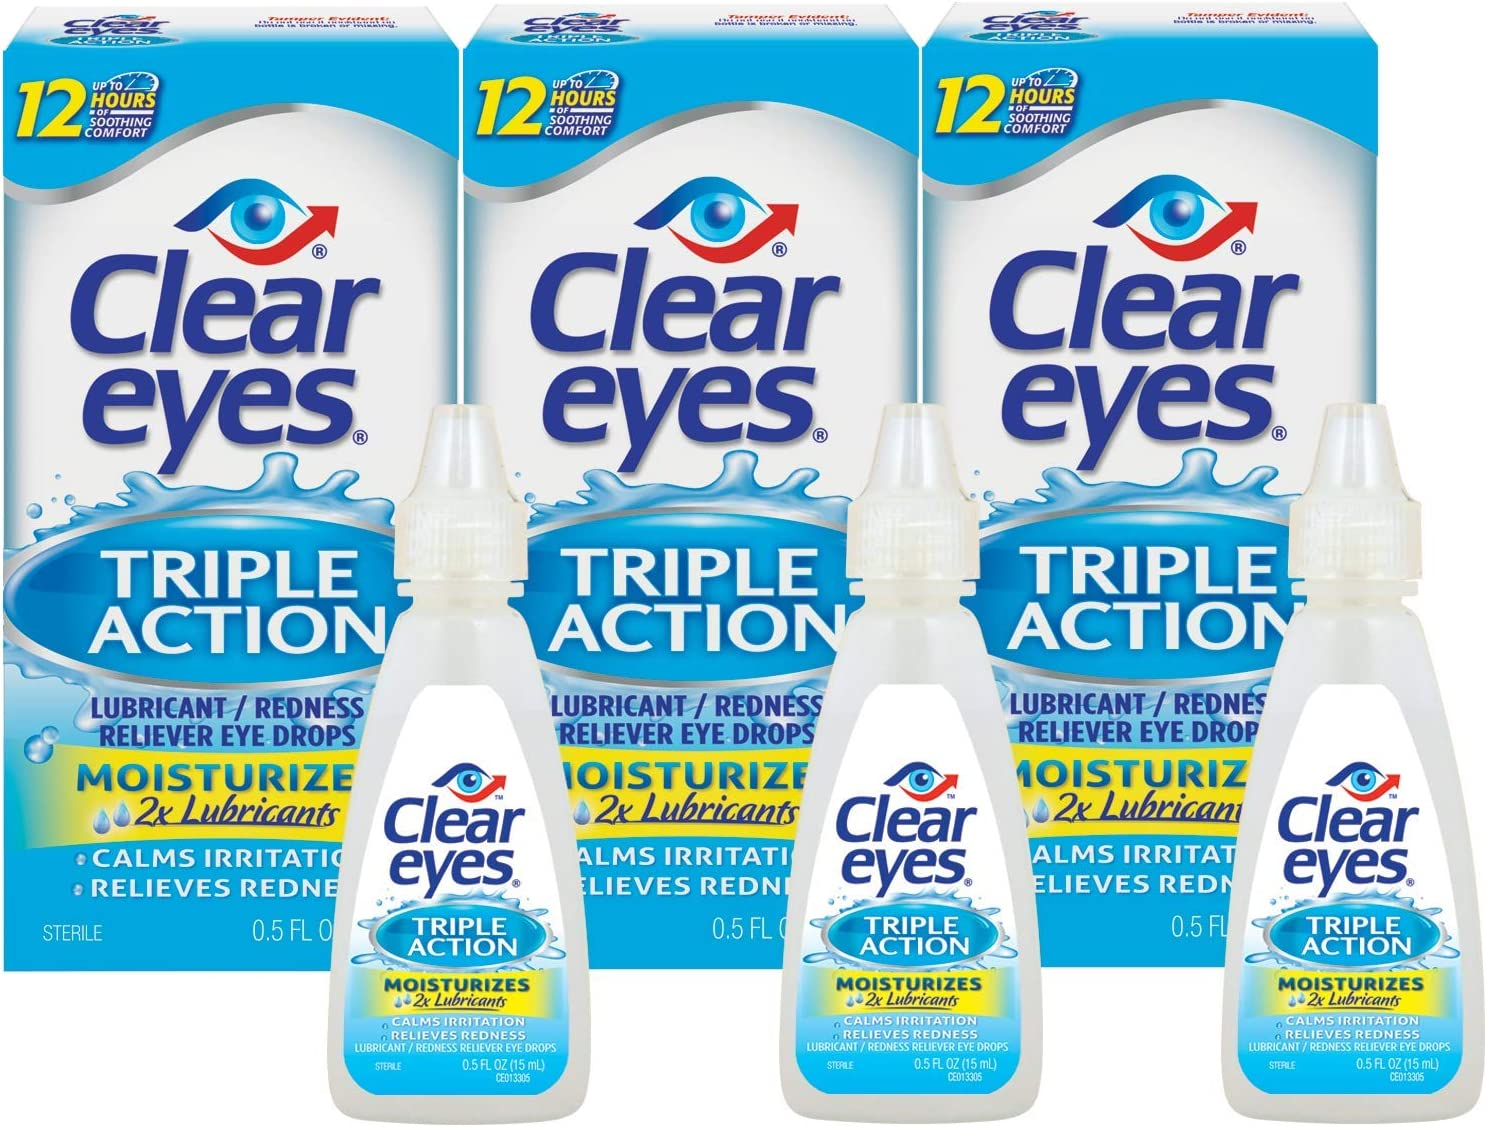 Clear Eyes | Triple Action Lubricant/Redness Relief Eye Drops | 0.5 FL OZ | Pack of 3